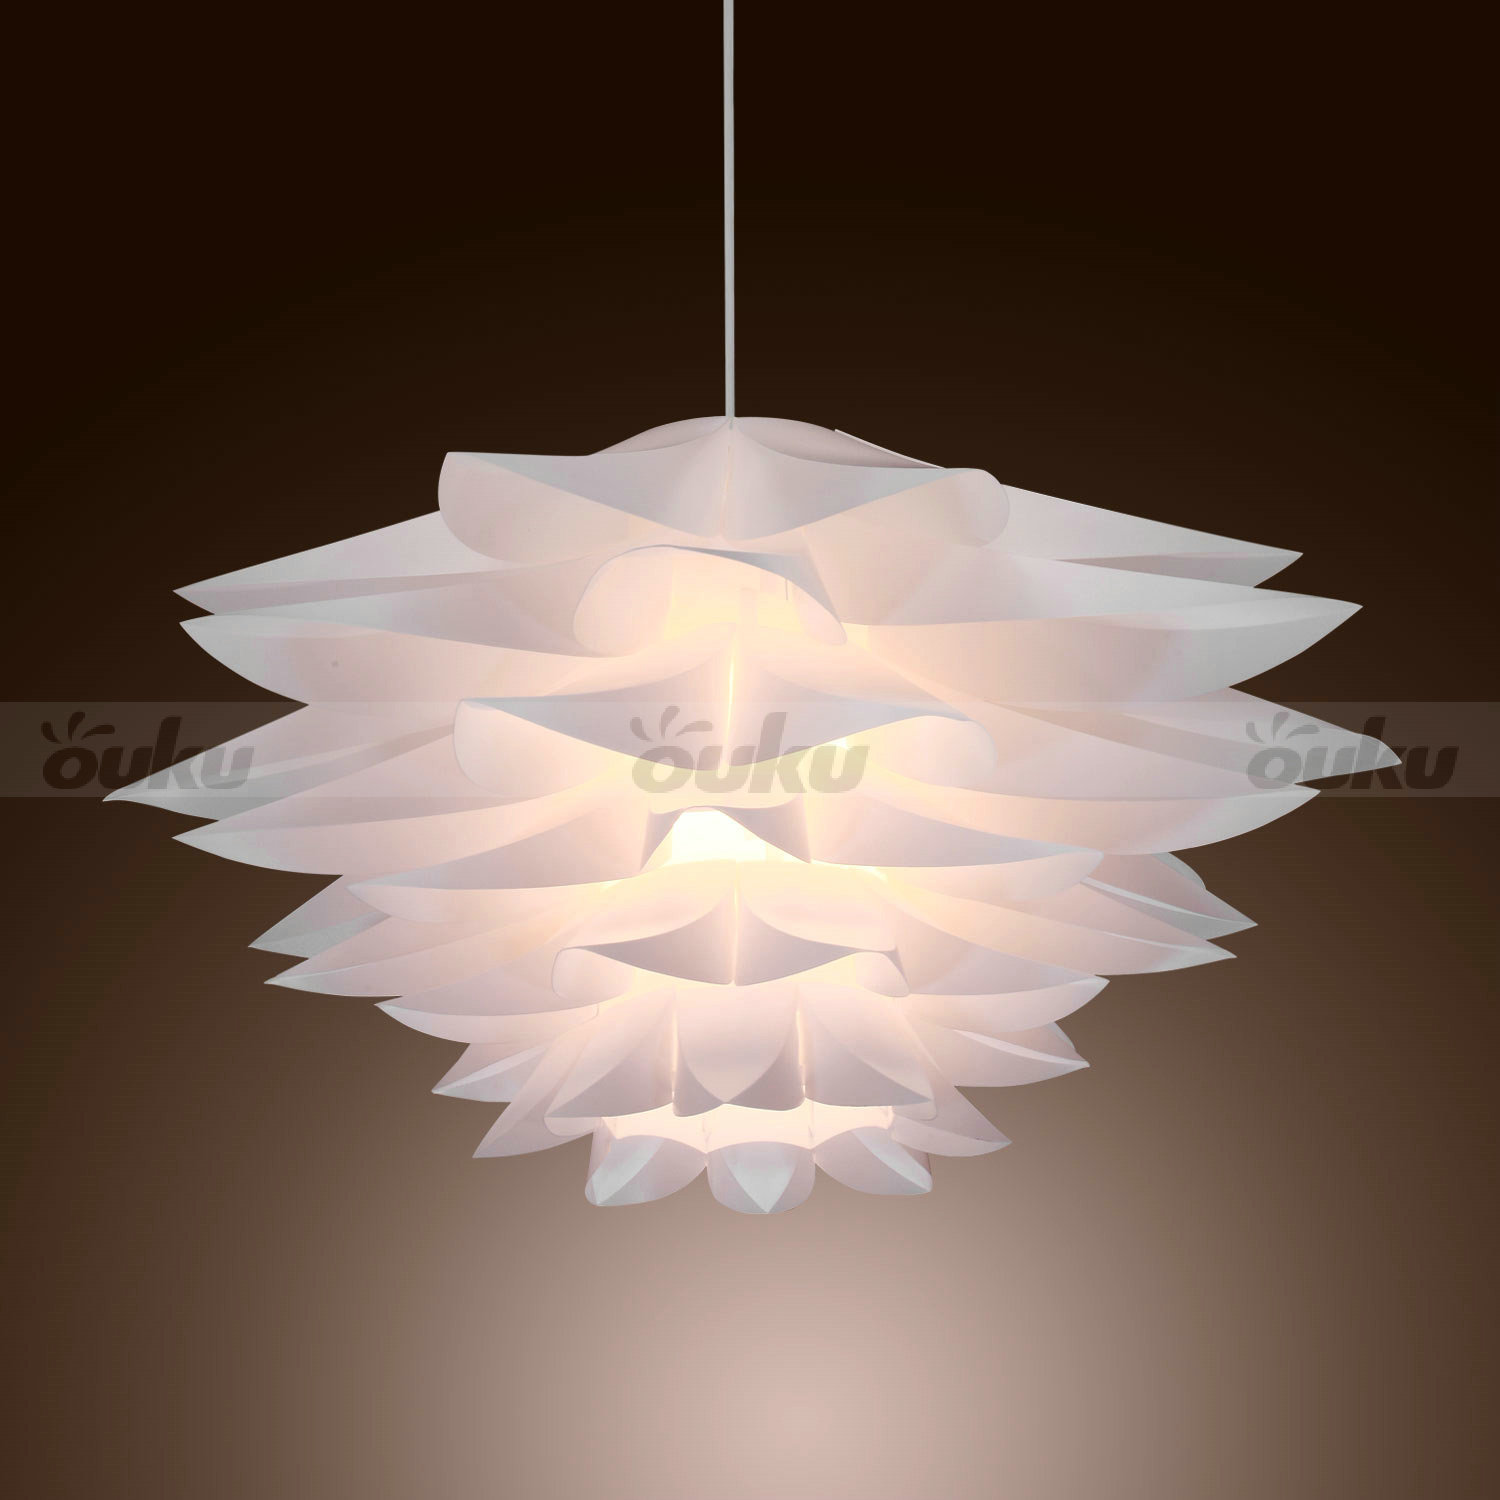 New modern white pvc ceiling light pendant lamp living room fixture chandelier ebay - Chandelier ceiling lamp ...